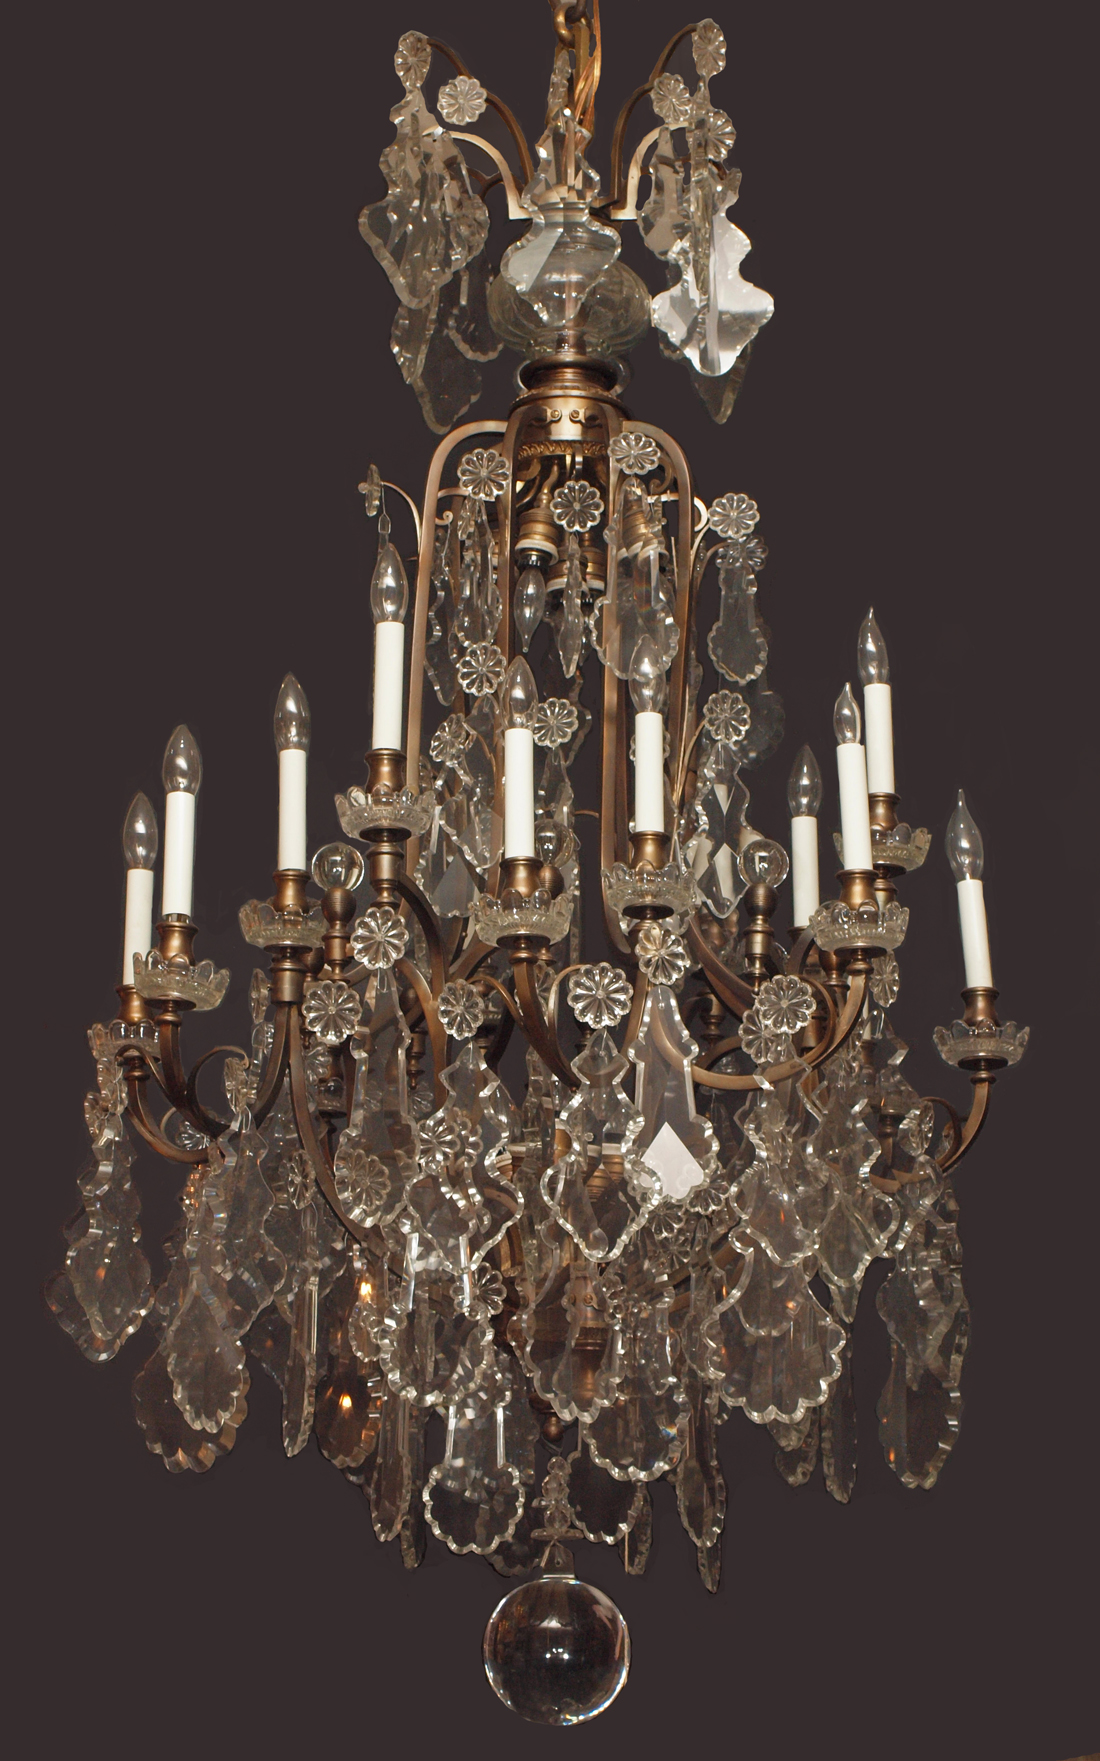 Antique french baccarat crystal chandelier chc9 for sale classifieds - Chandeliers on sale online ...